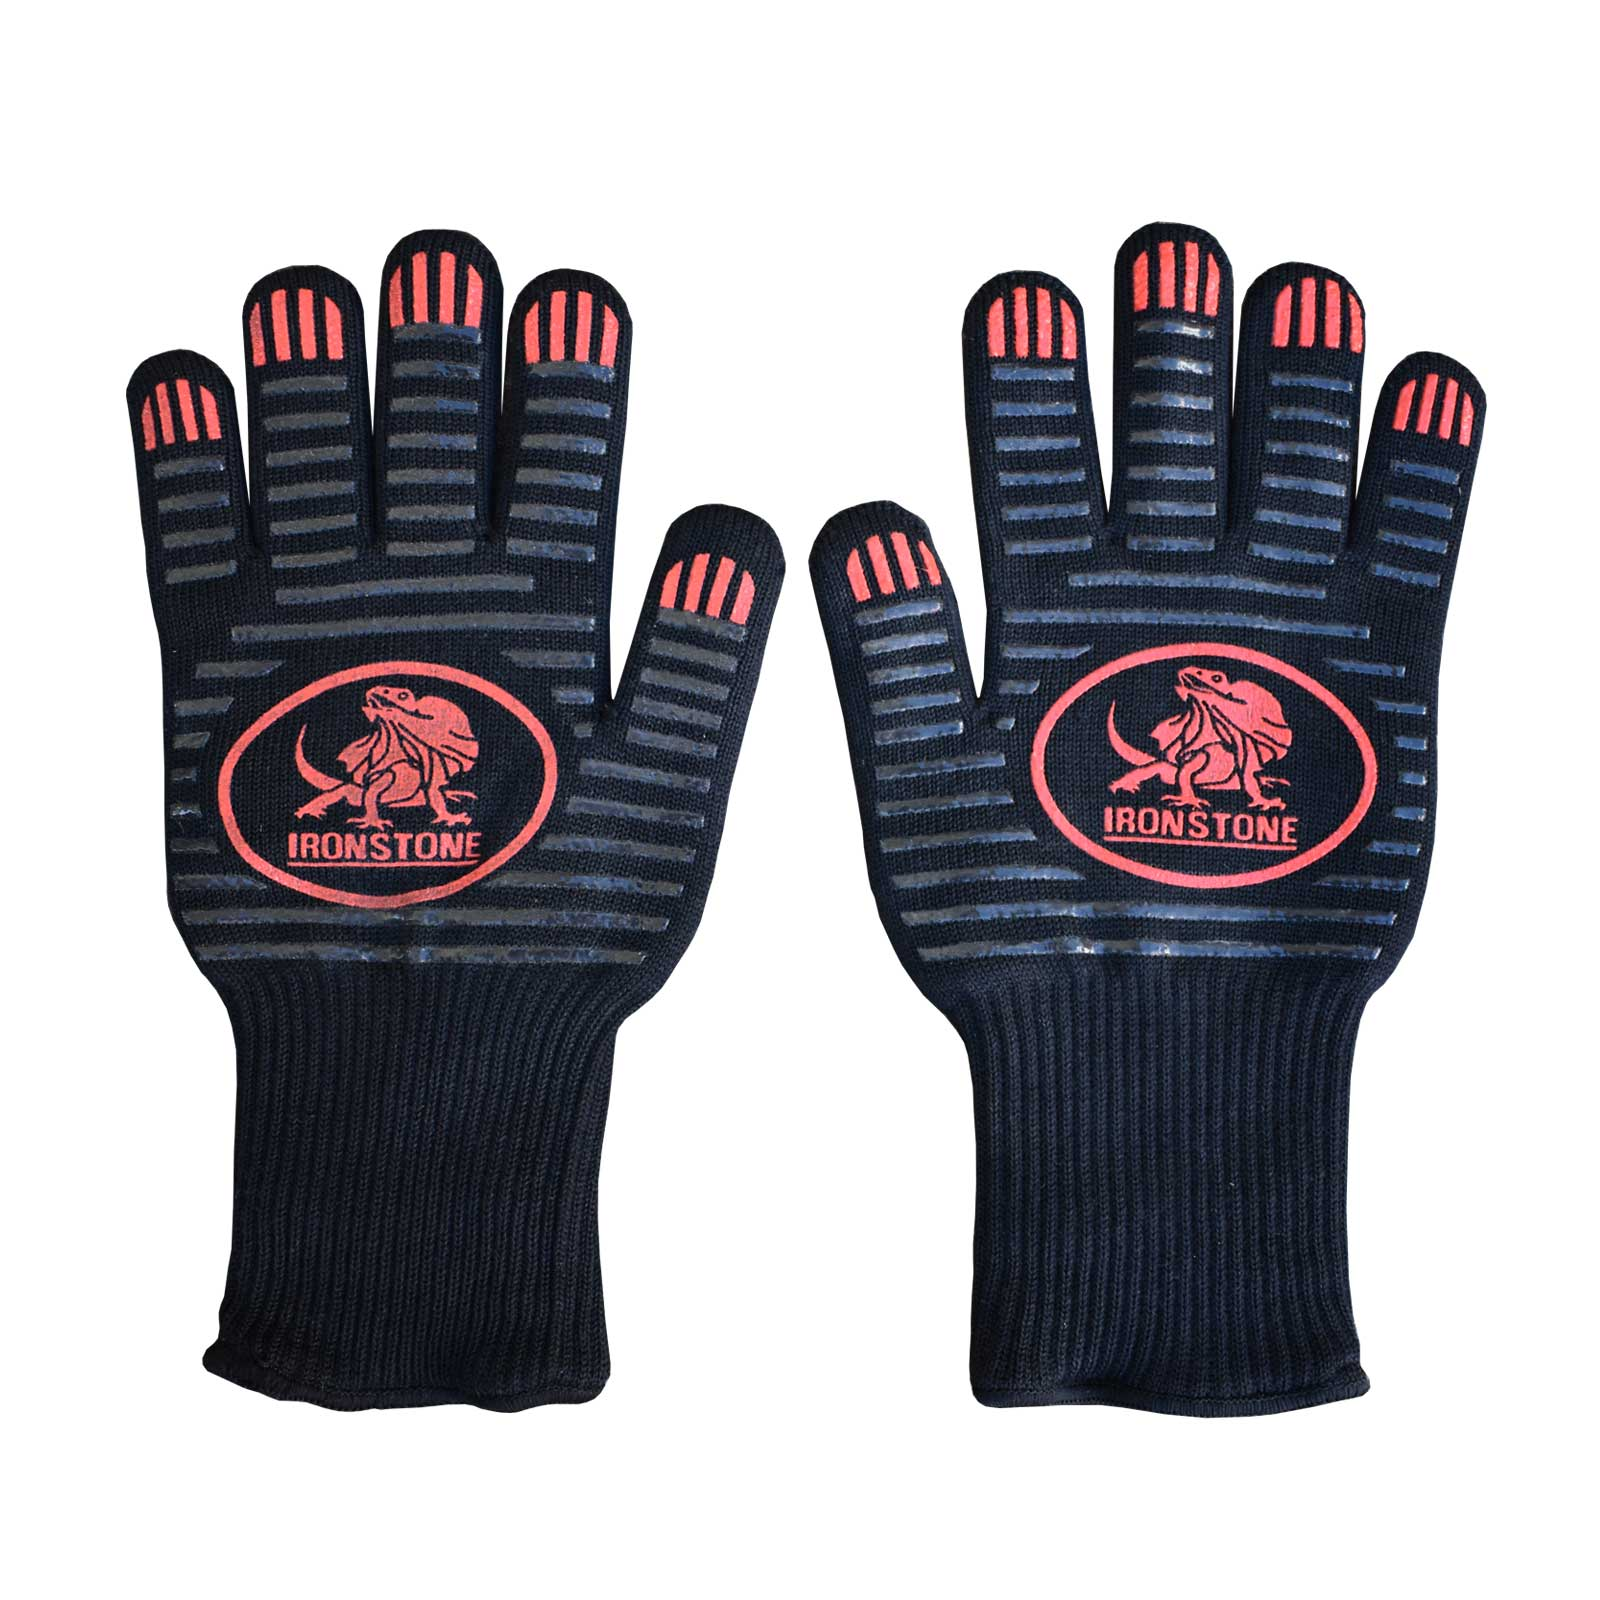 Ironstone-gloves-red2